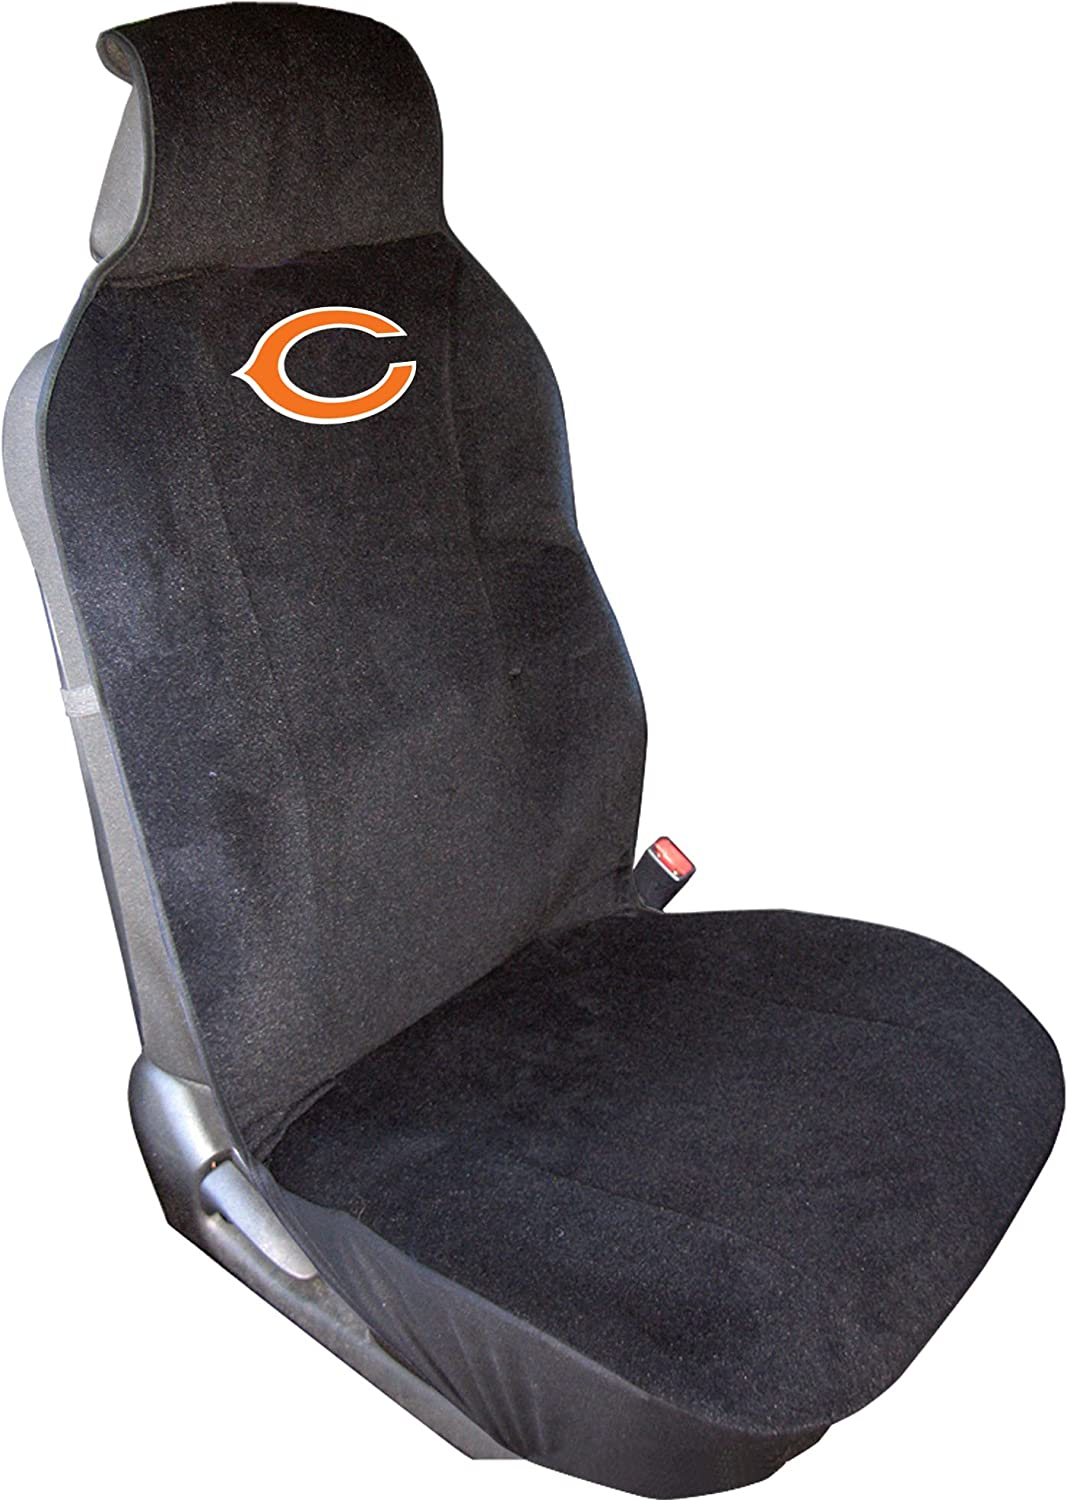 NFL Seat Cover